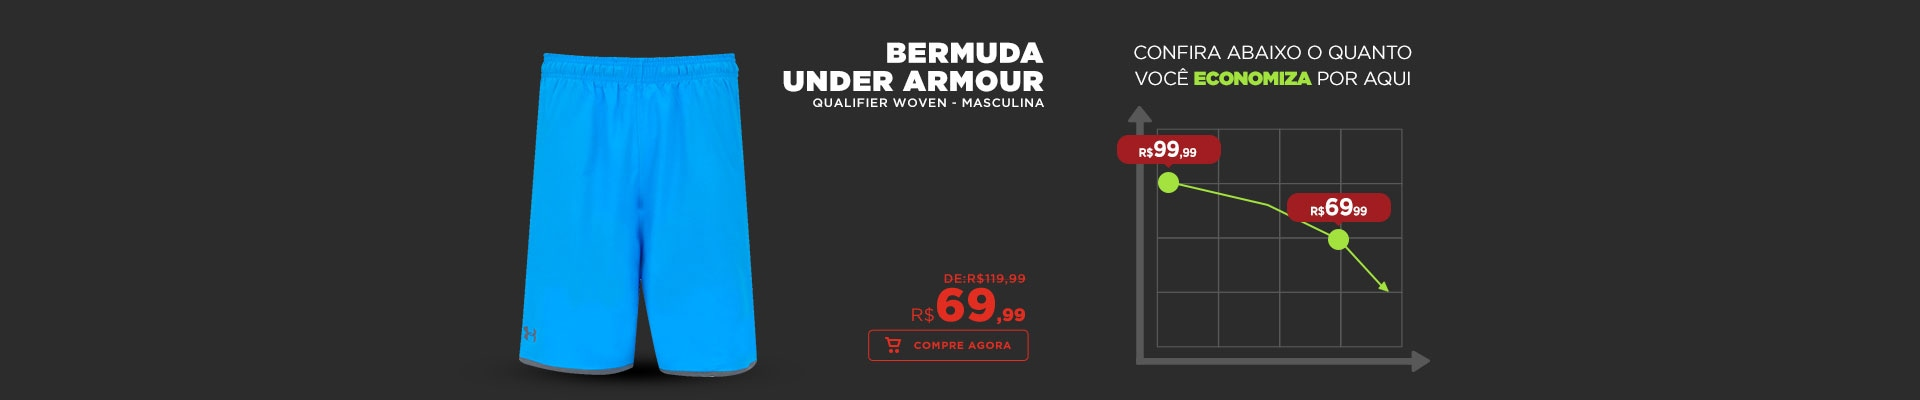 Bermuda Under Armour Qualifier Woven - Masculina